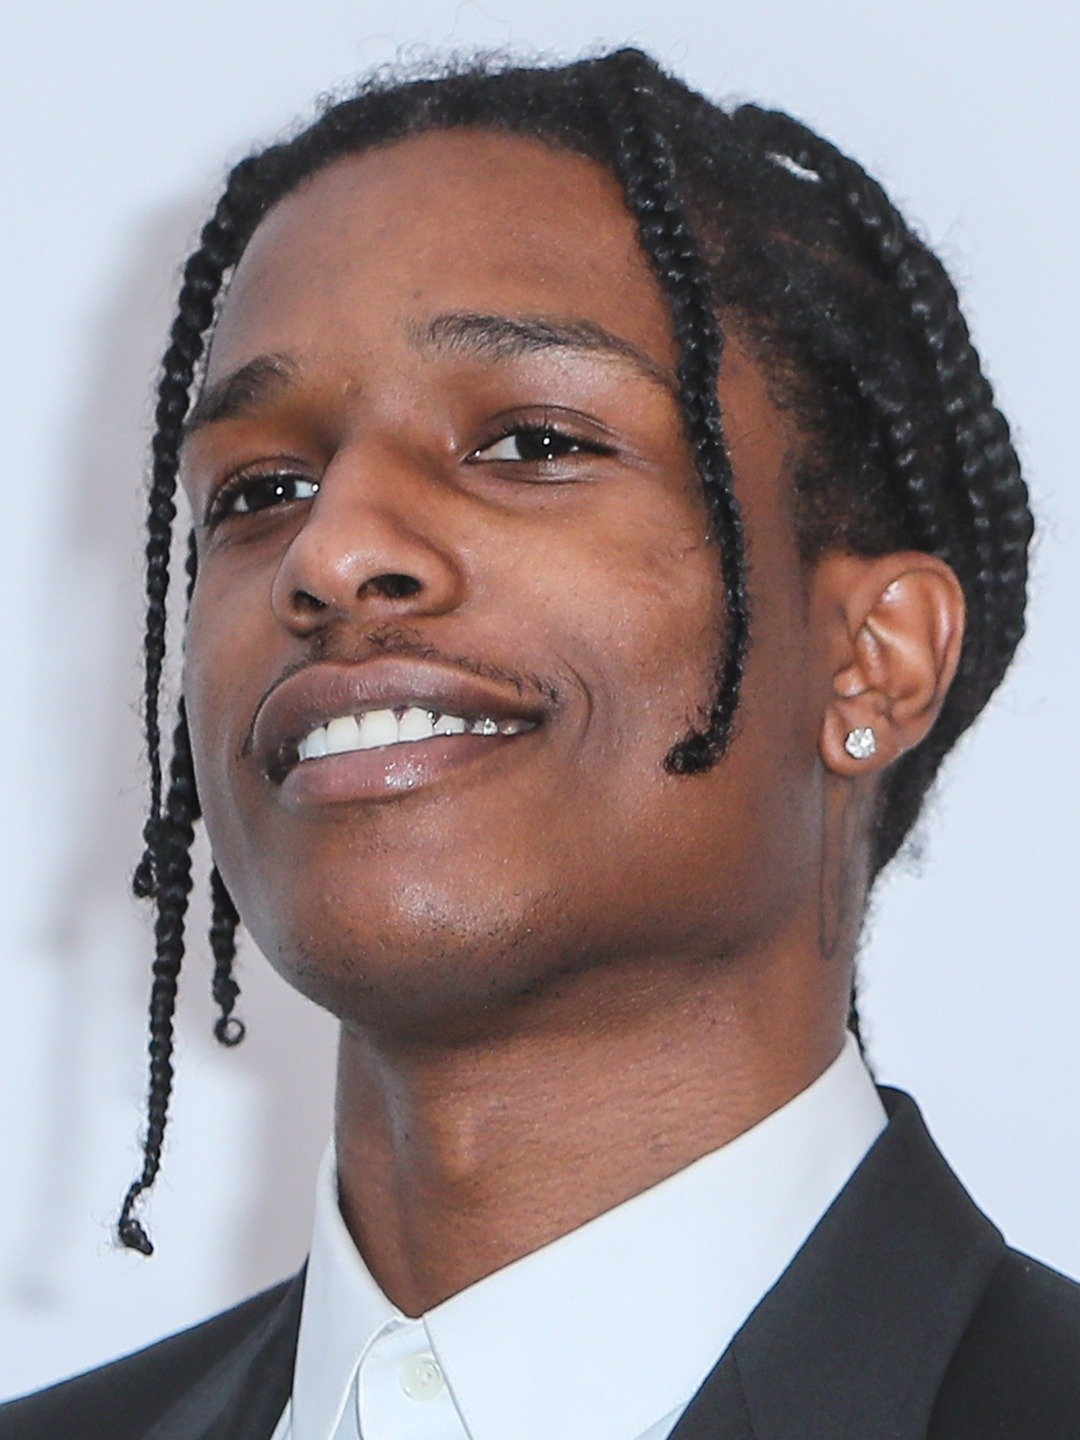 Asap Rocky American Rapper, Song Writer, Record Producer, Model, Actor